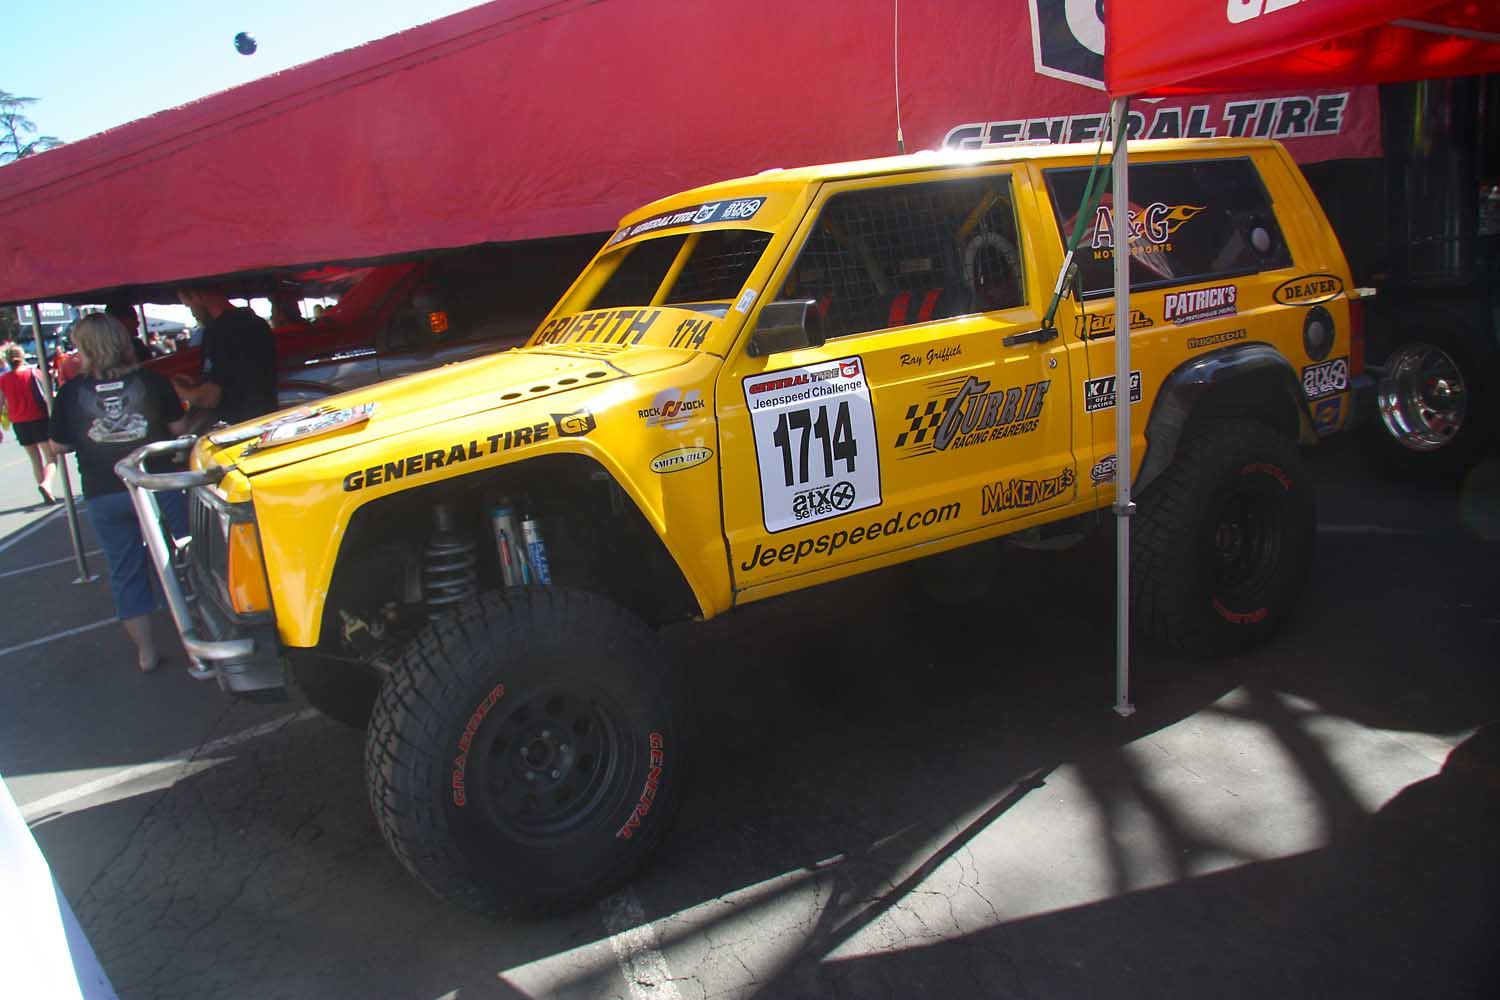 17  Ray Griffith Jeepspeed 1714 XJ Cherokee